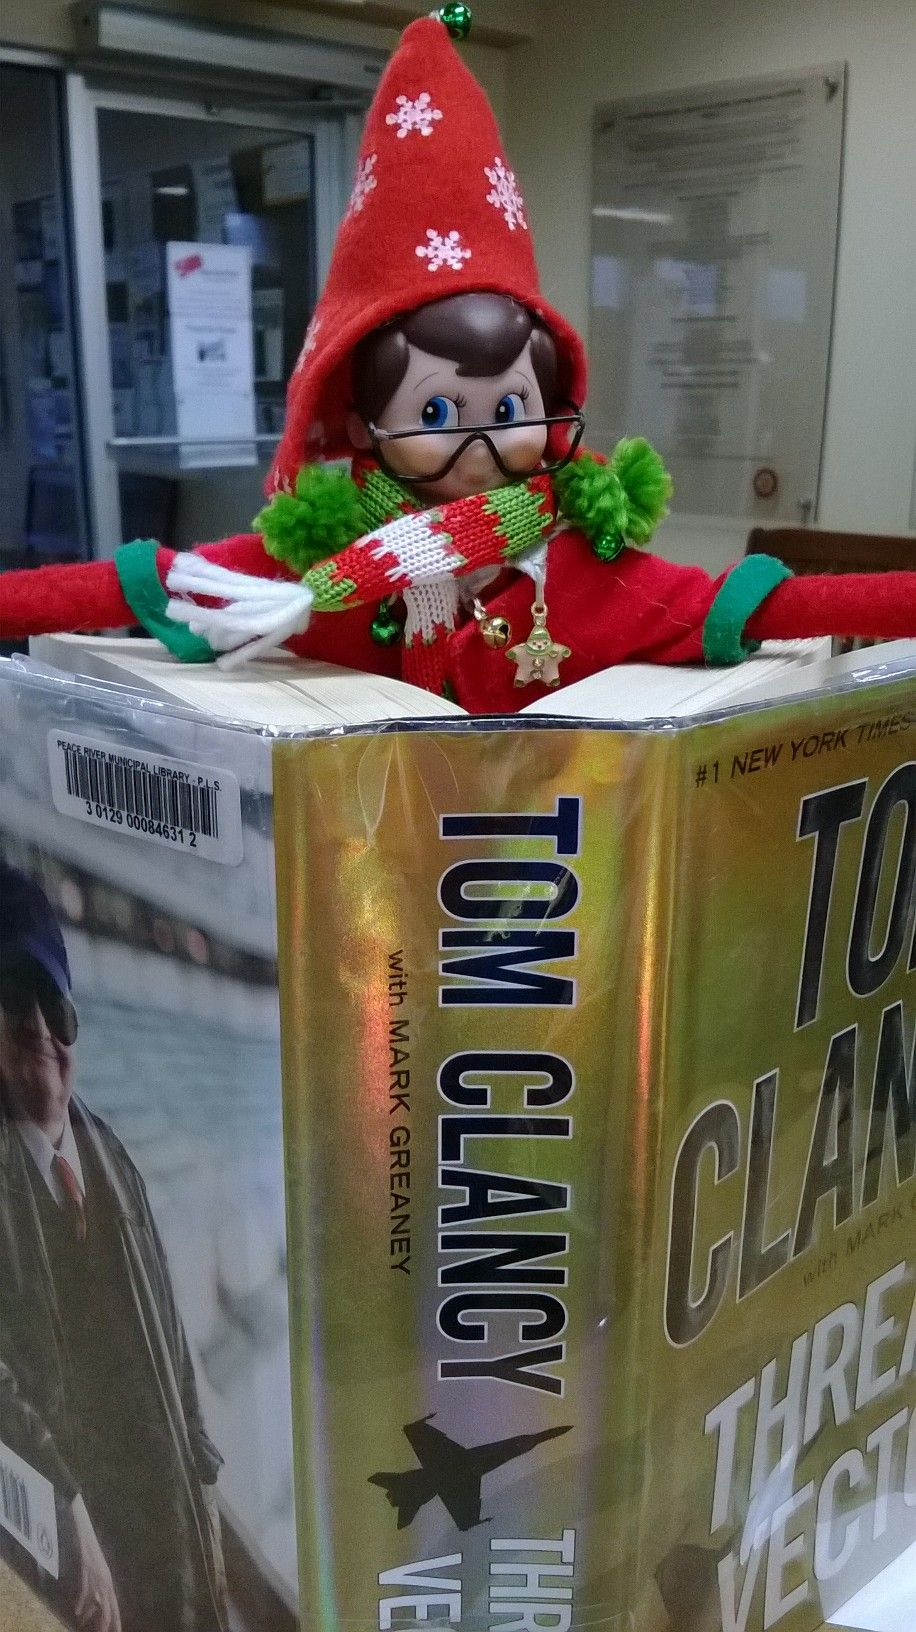 Our elf is doing some reading in our tom clancy book